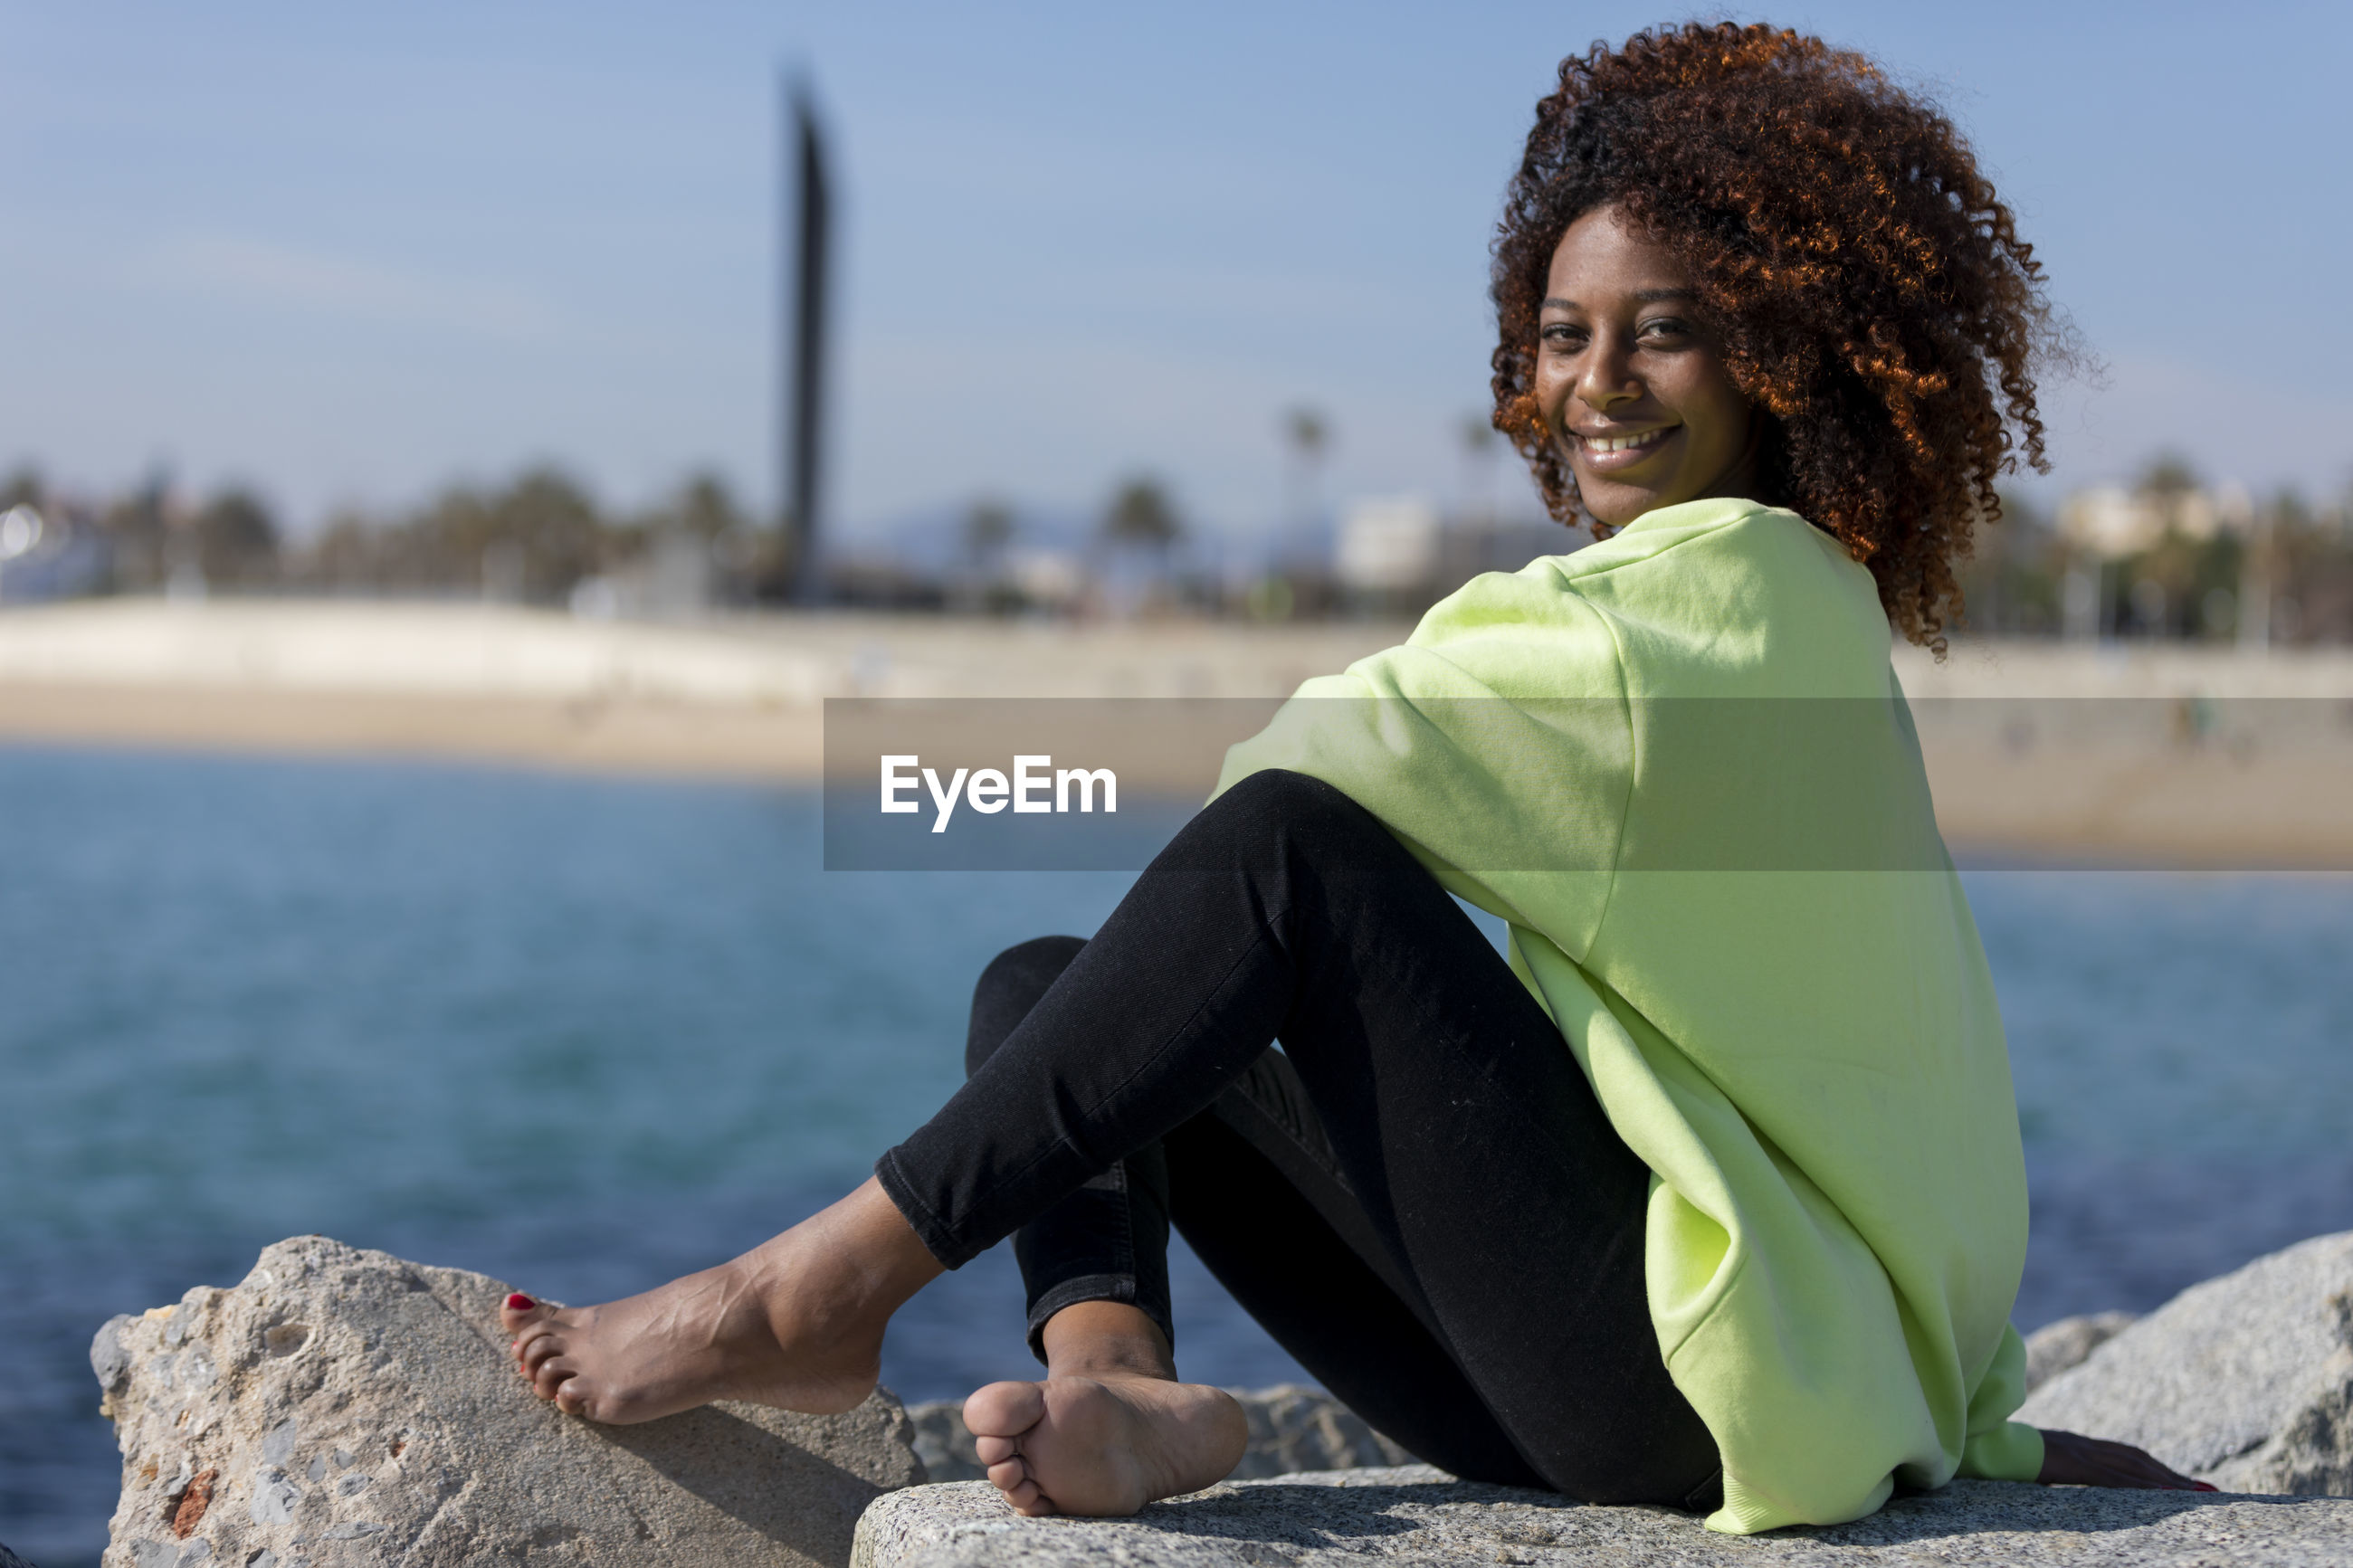 Portrait of young woman sitting outdoors on rock by sea